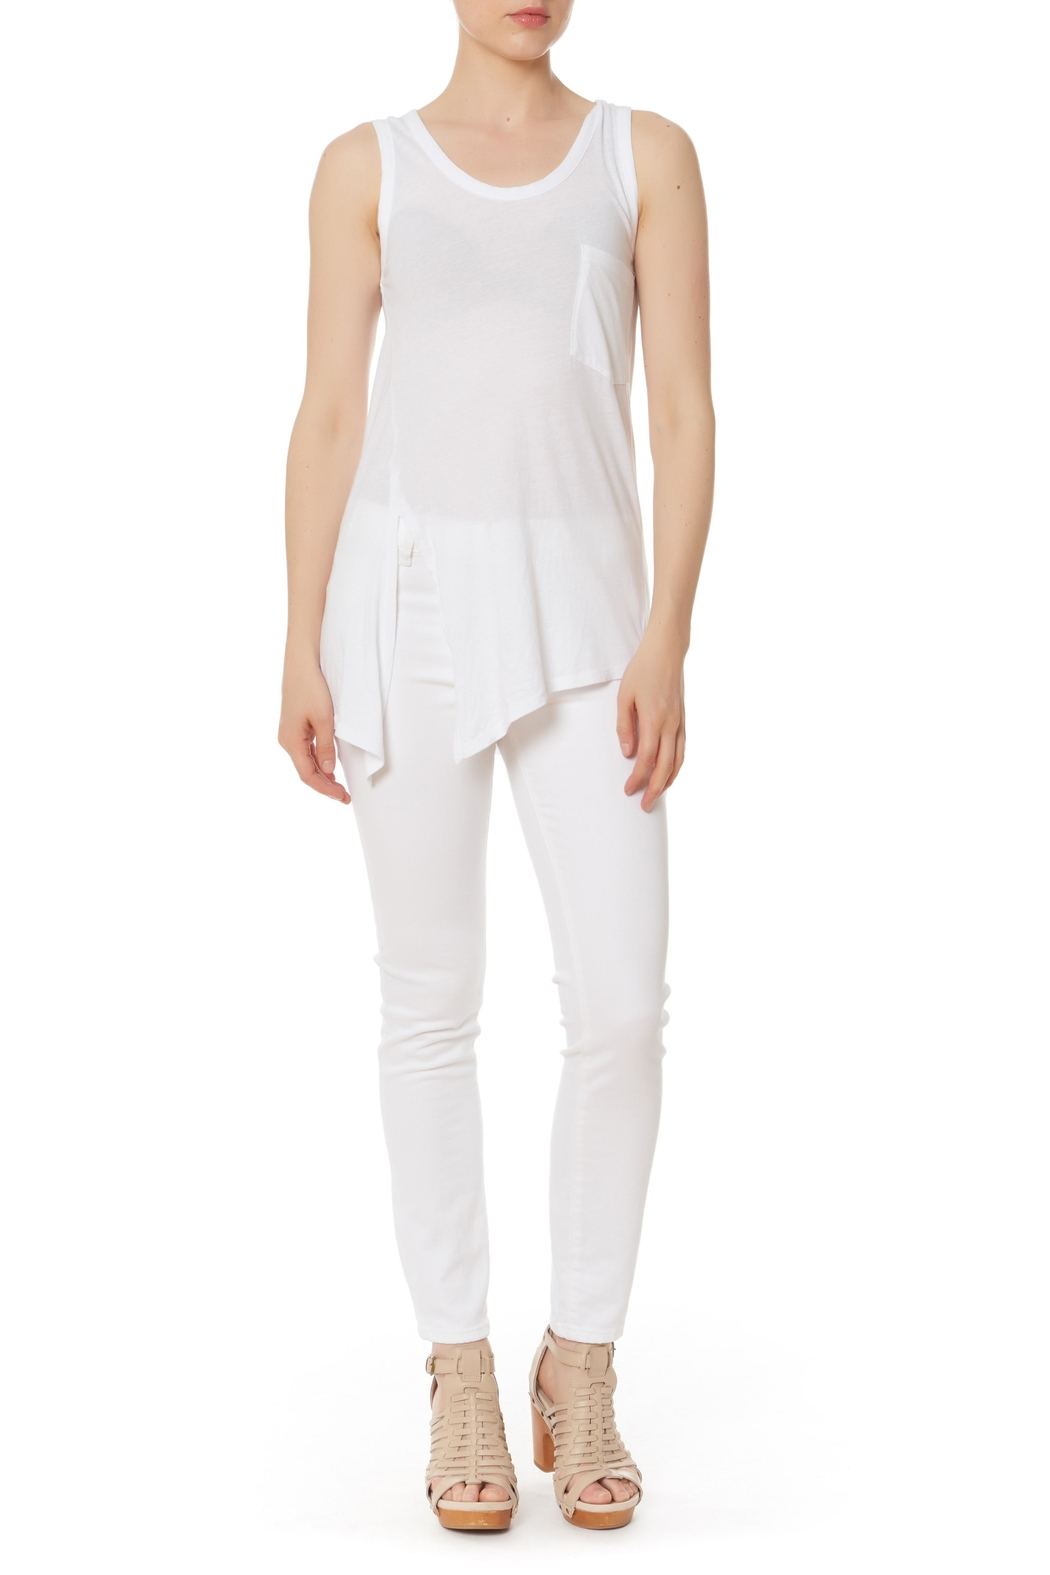 Bobi Los Angeles Side Knot Top - Main Image